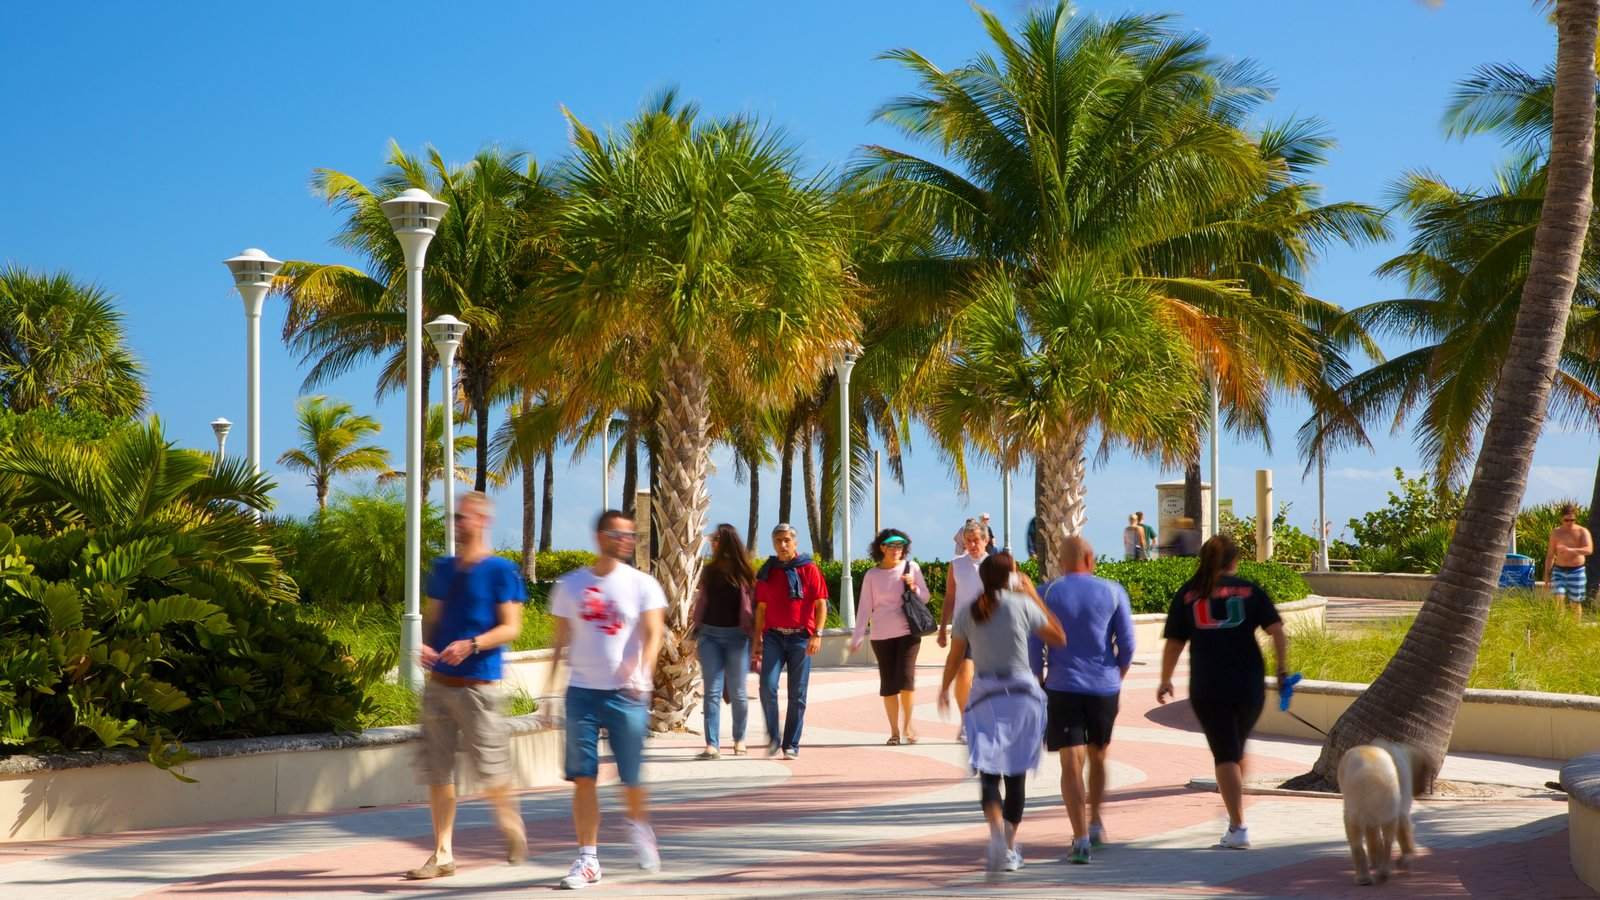 Miami Beach showing a park and tropical scenes